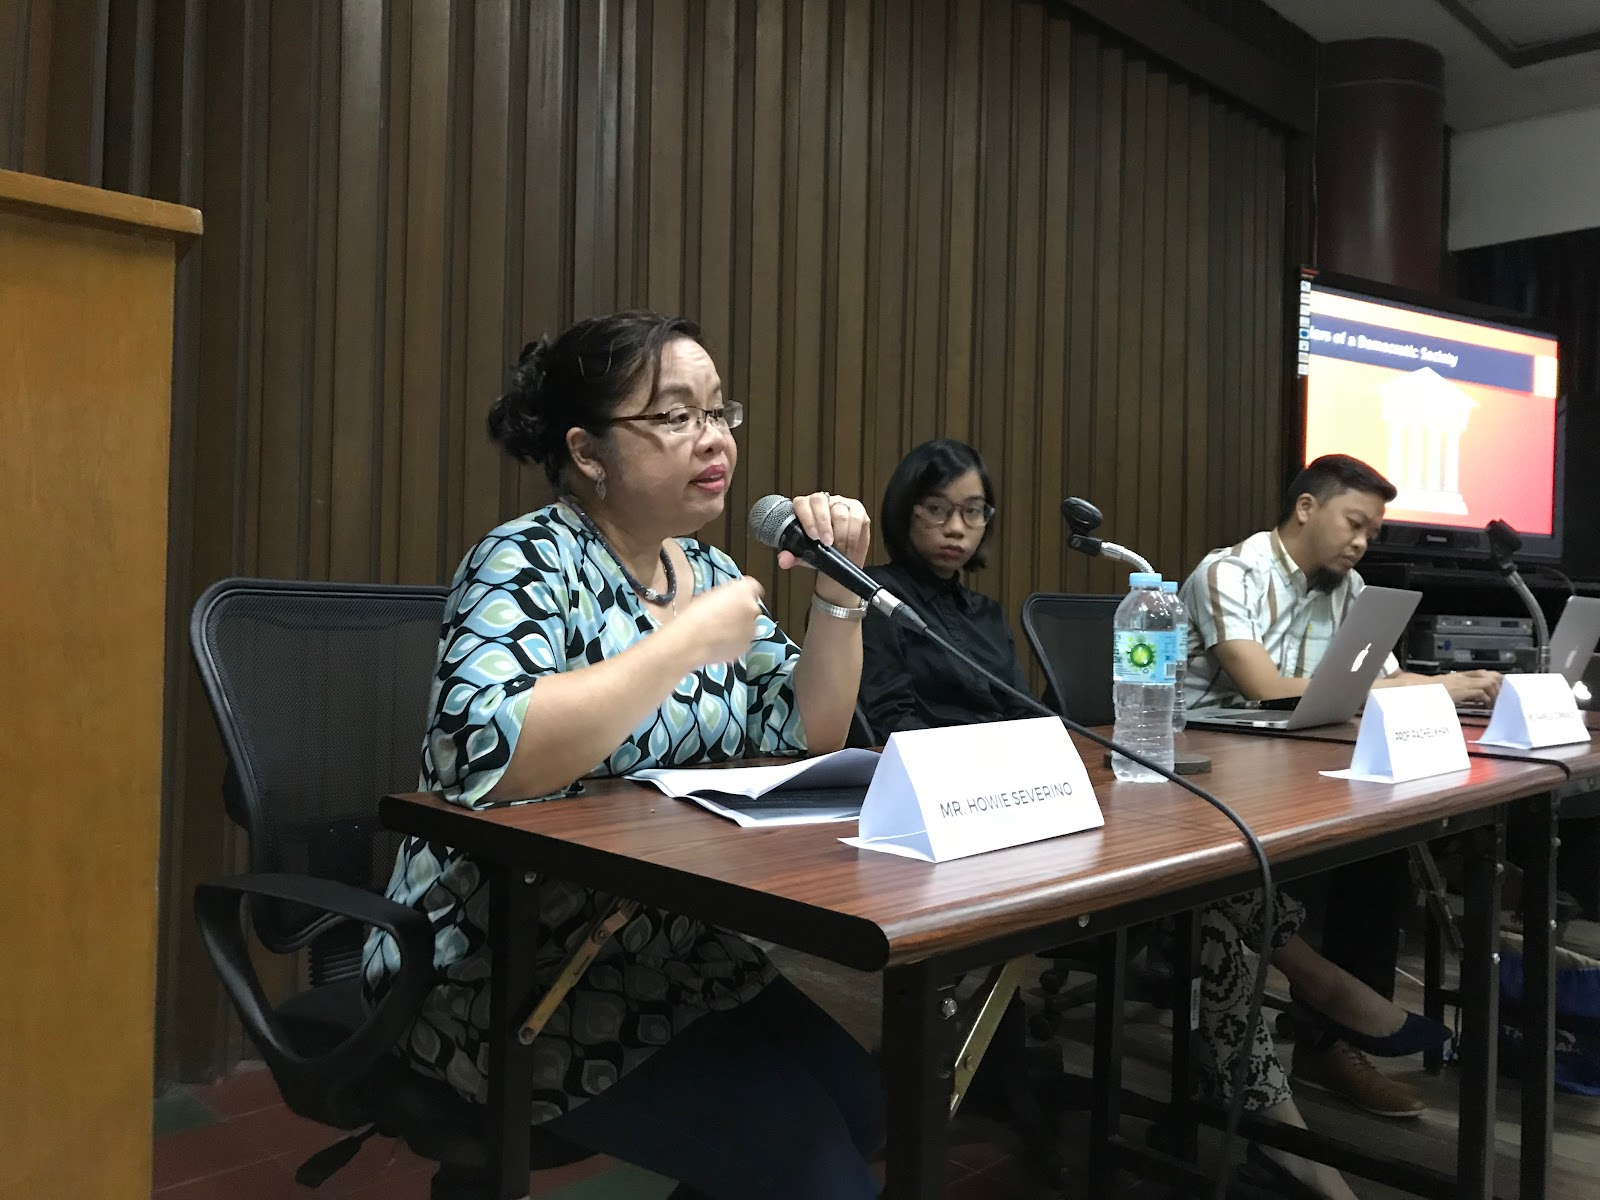 MEDIA ATTACKS. Professor Rachel Khan, chairperson of the UP Department of Journalism emphasizes the real effects of silencing the press. Photo by Gari Acolola/Rappler